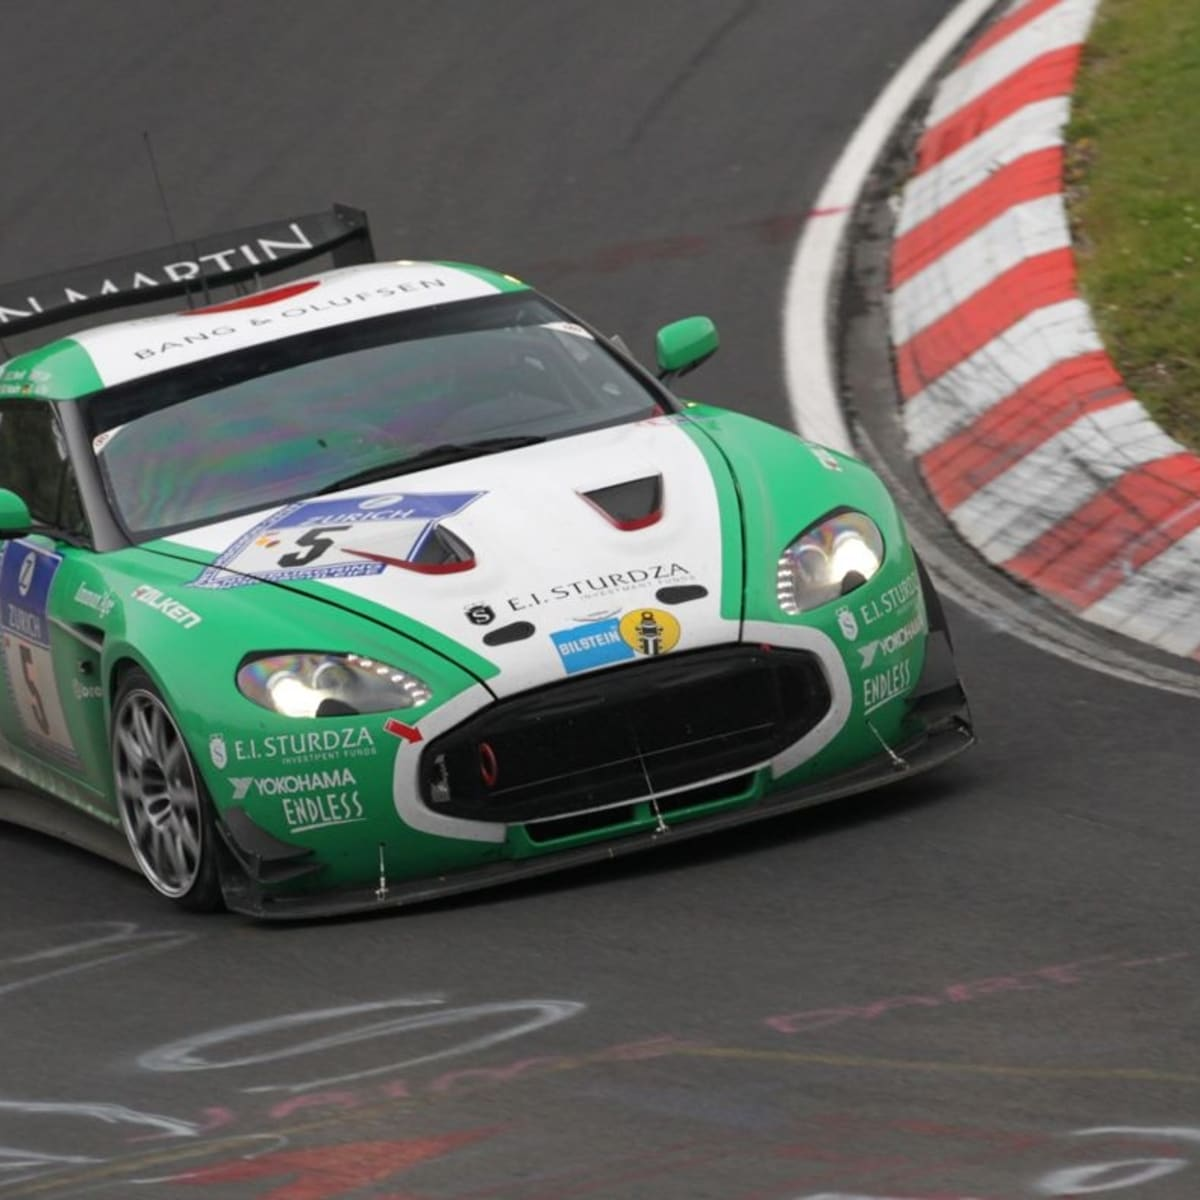 Aston Martin V12 Zagato In Class Lead After 9 Hours Caradvice